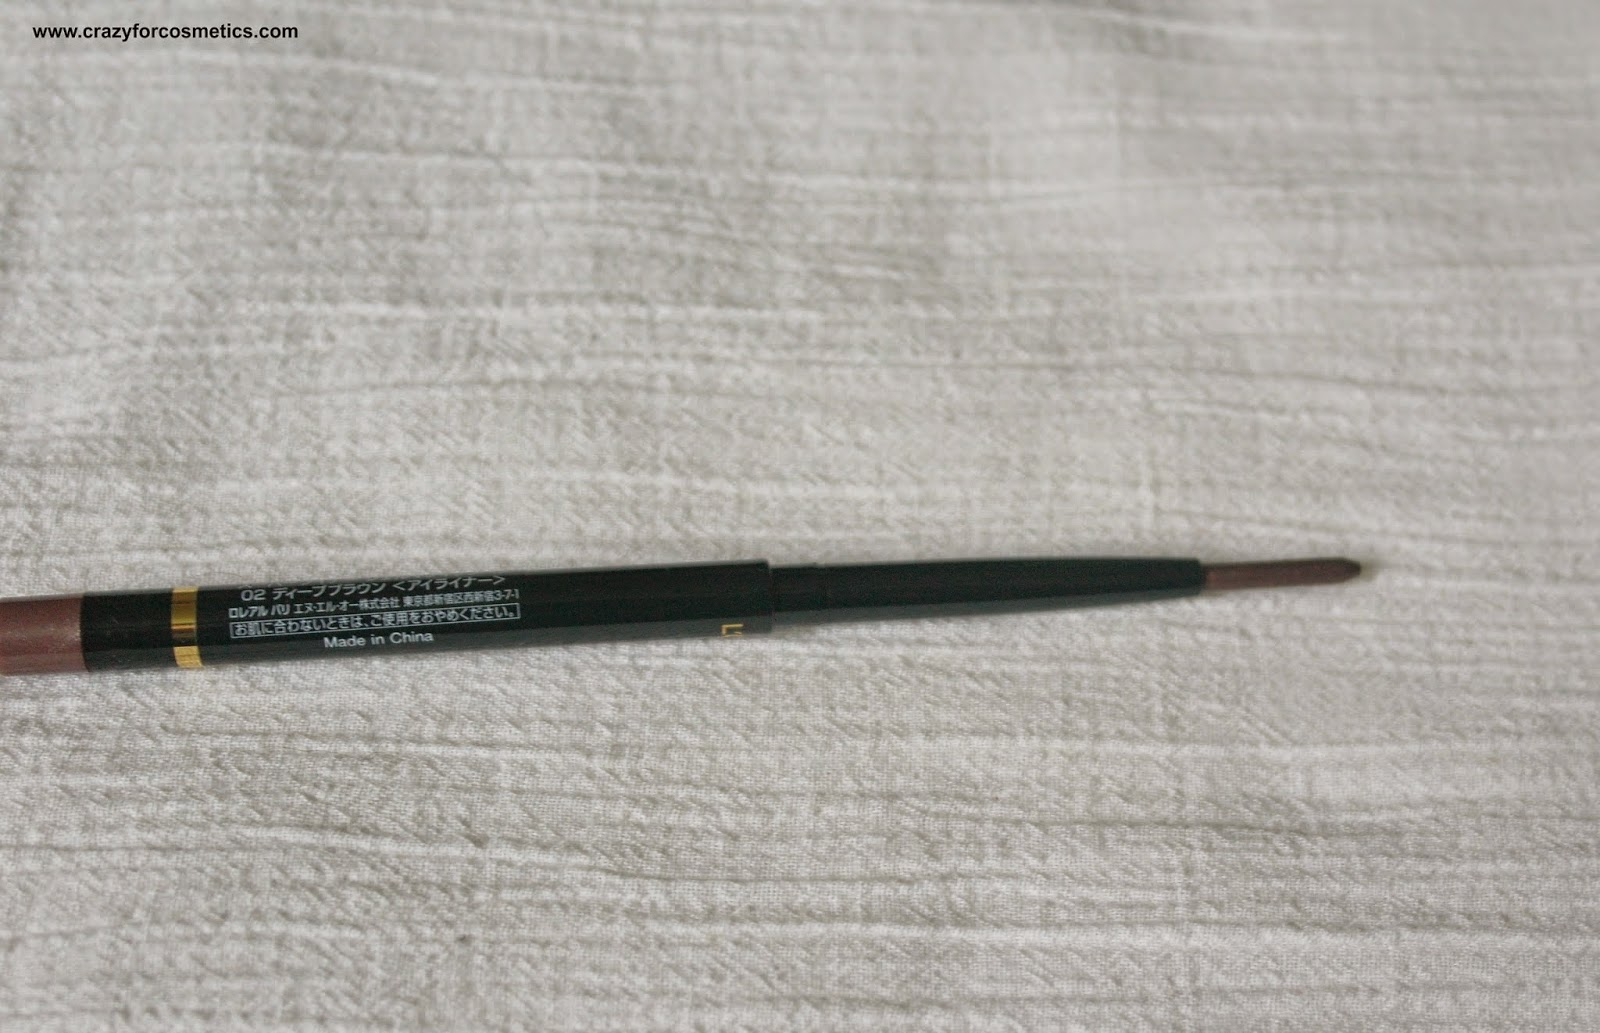 L'Oreal Paris Superliner uy onlineGelmatic Eyeliner in Deep Brown